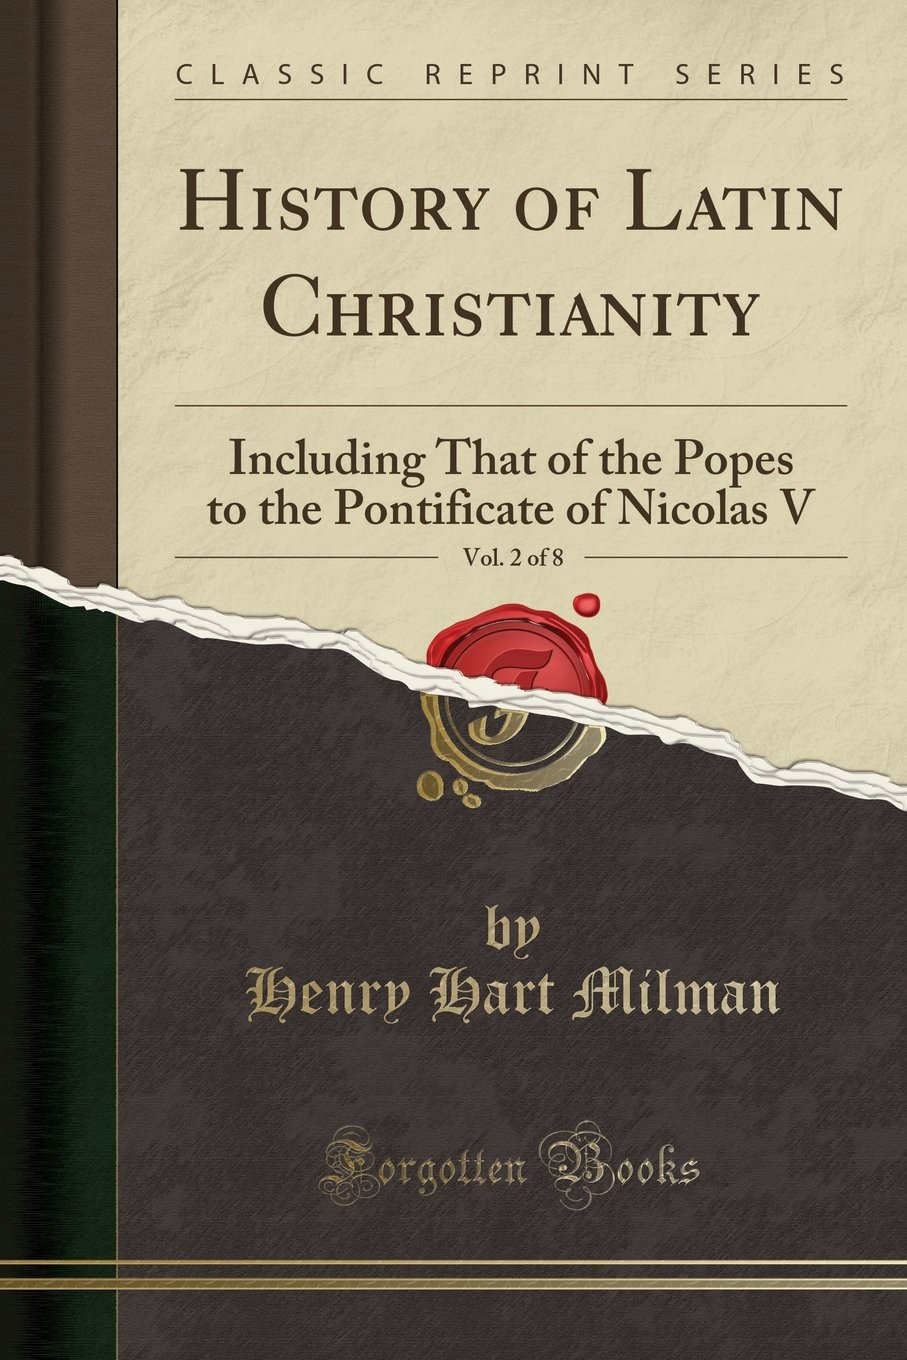 History of Latin Christianity, Vol. 2 of 8: Including That of the Popes to the Pontificate of Nicolas V (Classic Reprint) pdf